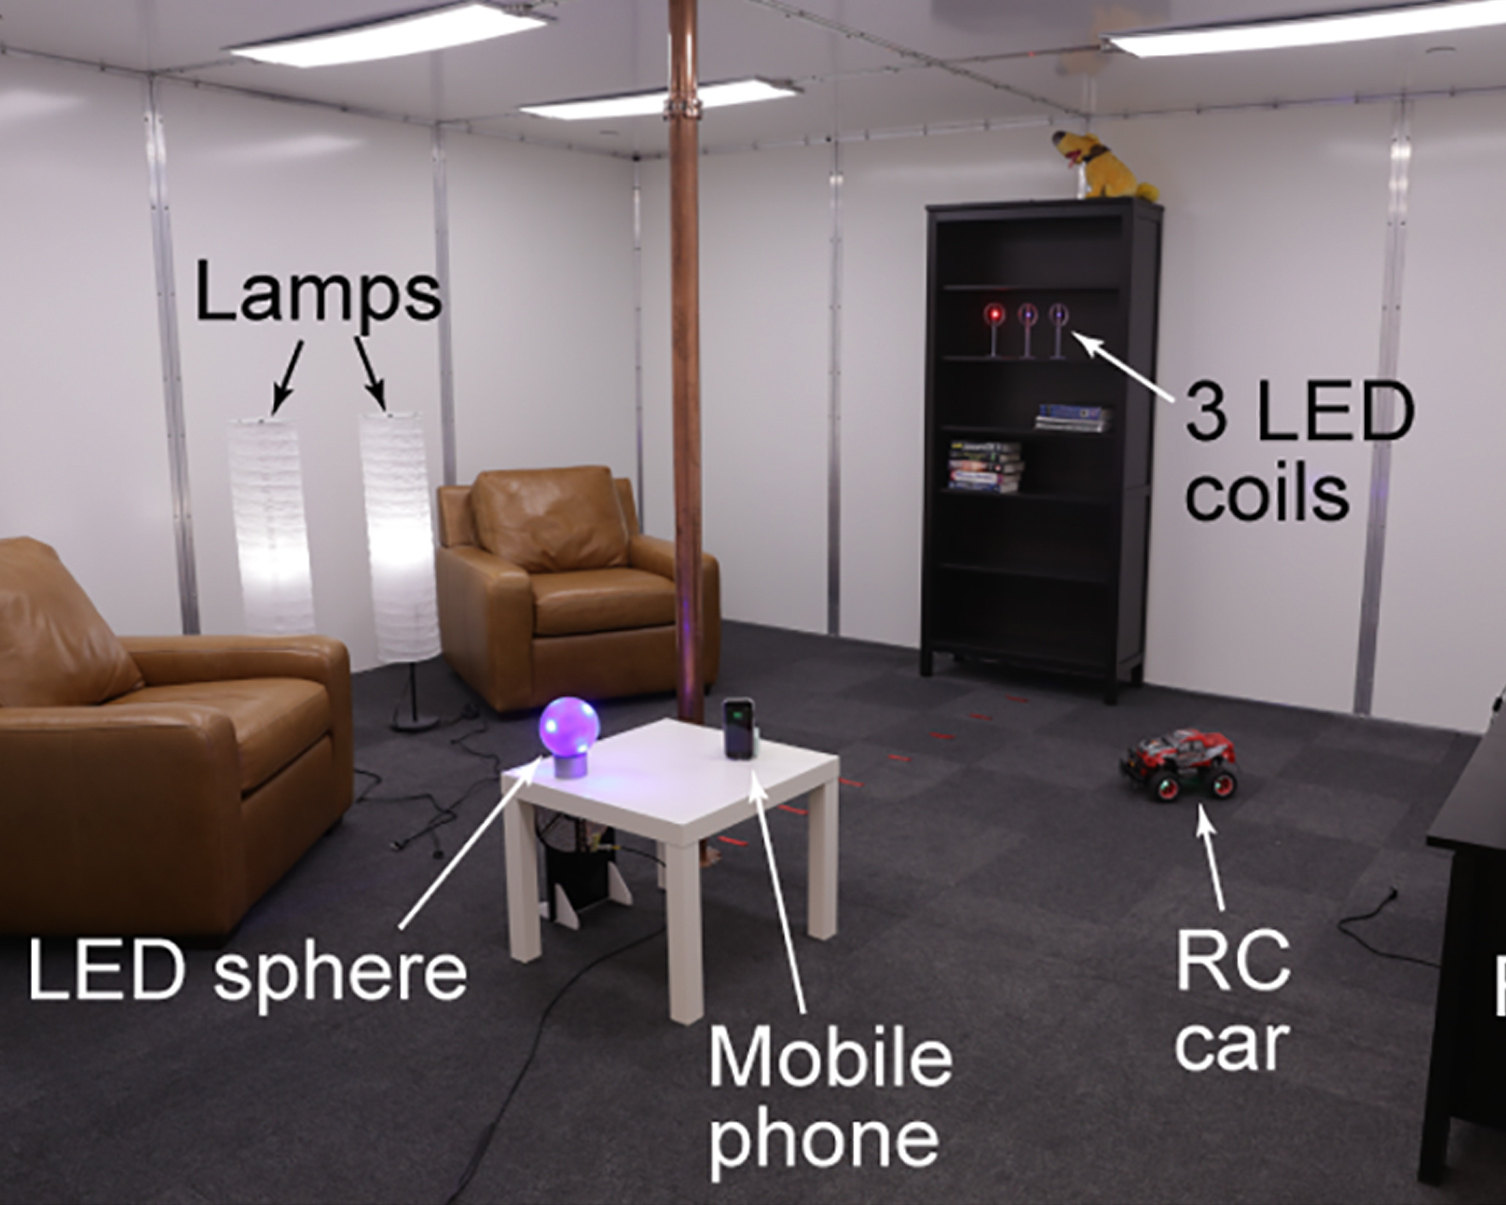 Disney builds living room that can wirelessly charge devices